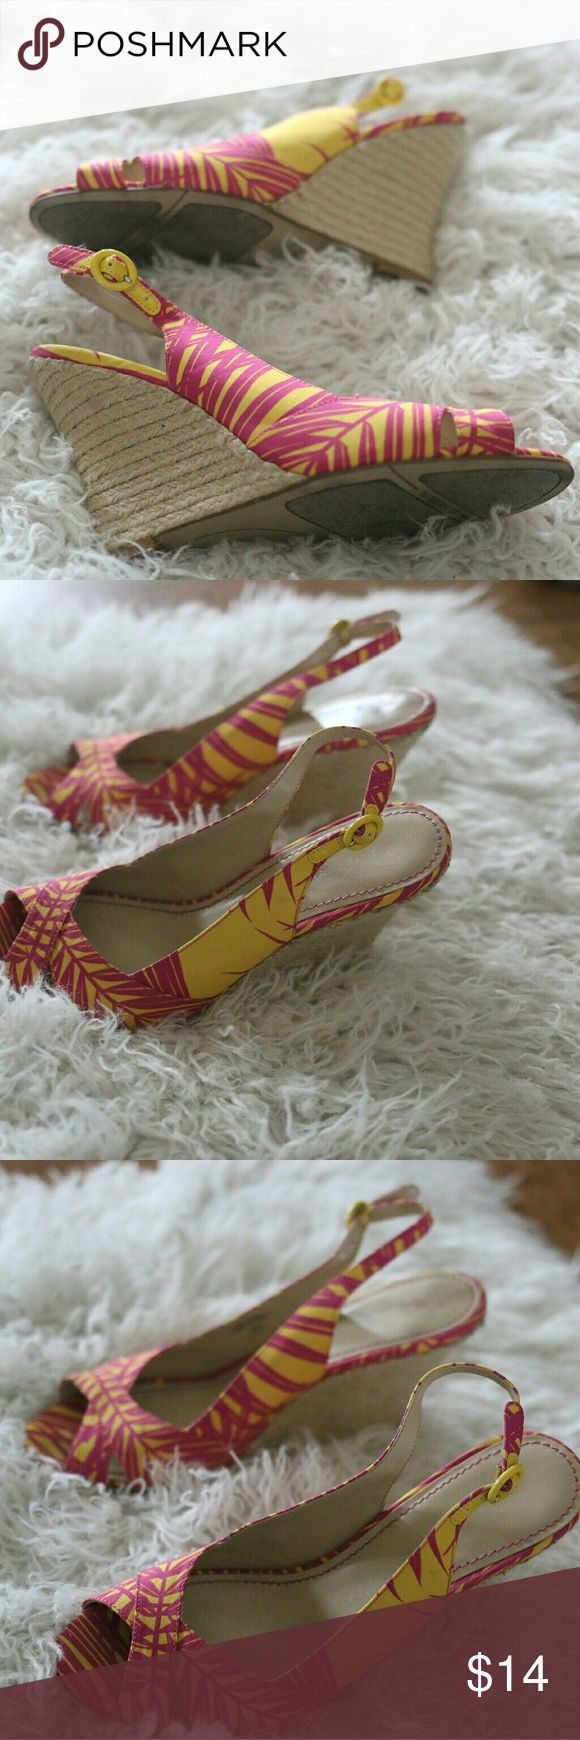 Nine West Floral Espadrille Wedge Heel Sandal 8.5 Nine West Floral Espadrille Sandals.  Size 8.5.  Fun floral pattern in pink and yellow.  Ankle strap with buckle.  Woven straw heel.  Some wear to way bottom of heel.  No trades, offers welcome. Nine West Shoes Espadrilles